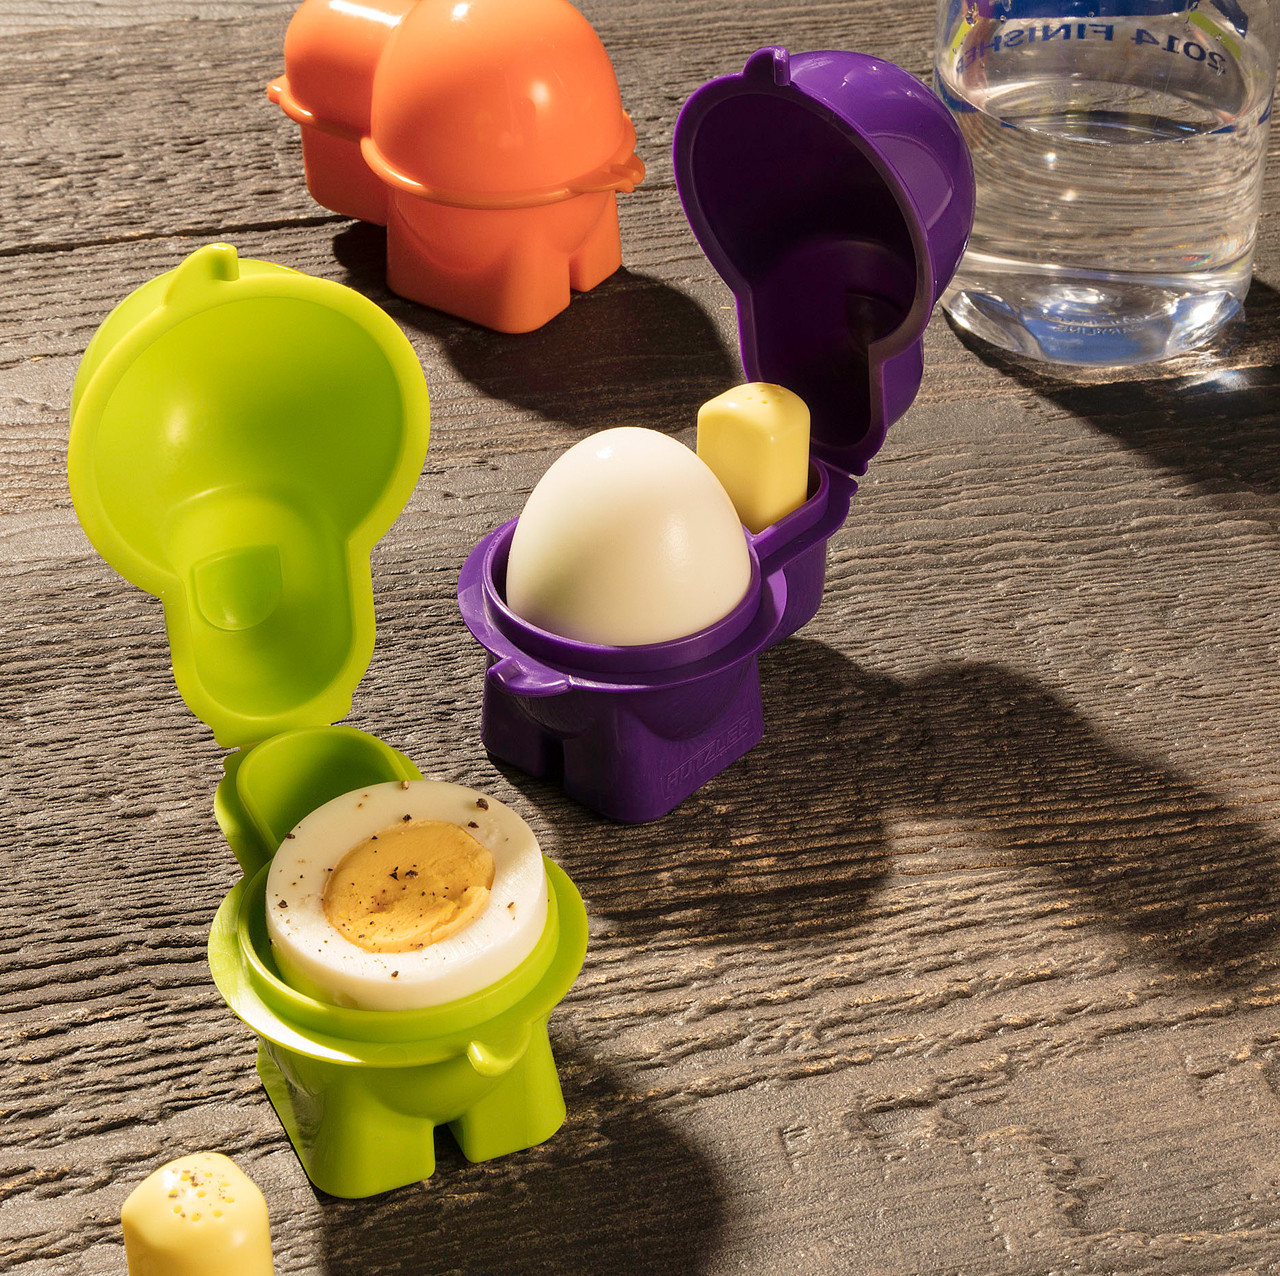 Egg To Go Container For Hardboiled Eggs With Salt Shaker